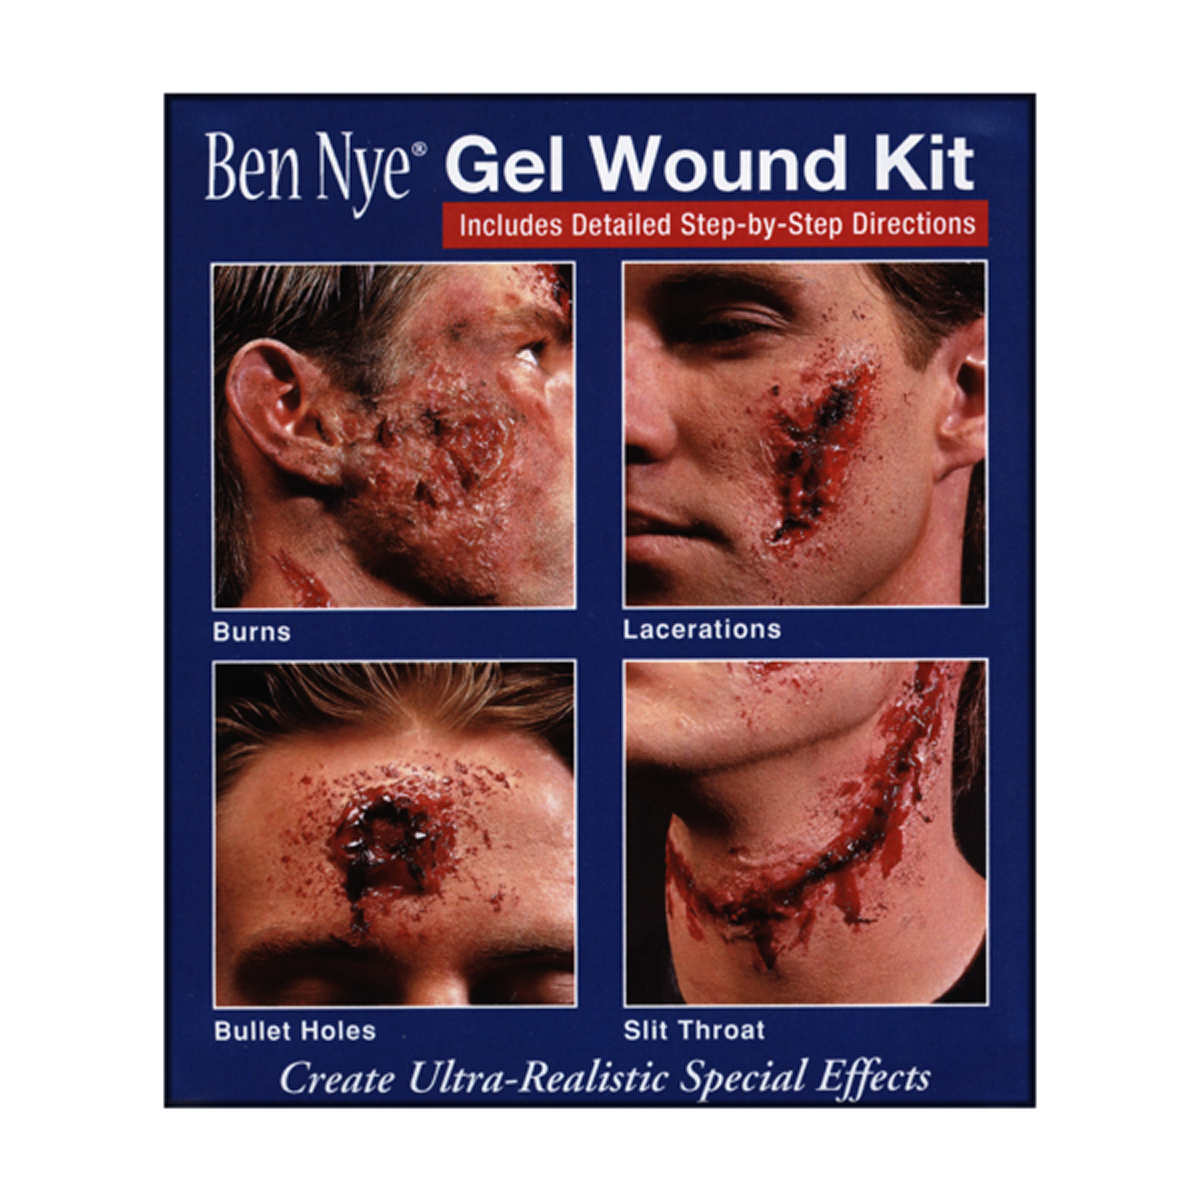 Ben Nye Professional Gel Wound Kit - Red Carpet FX - Professional Makeup